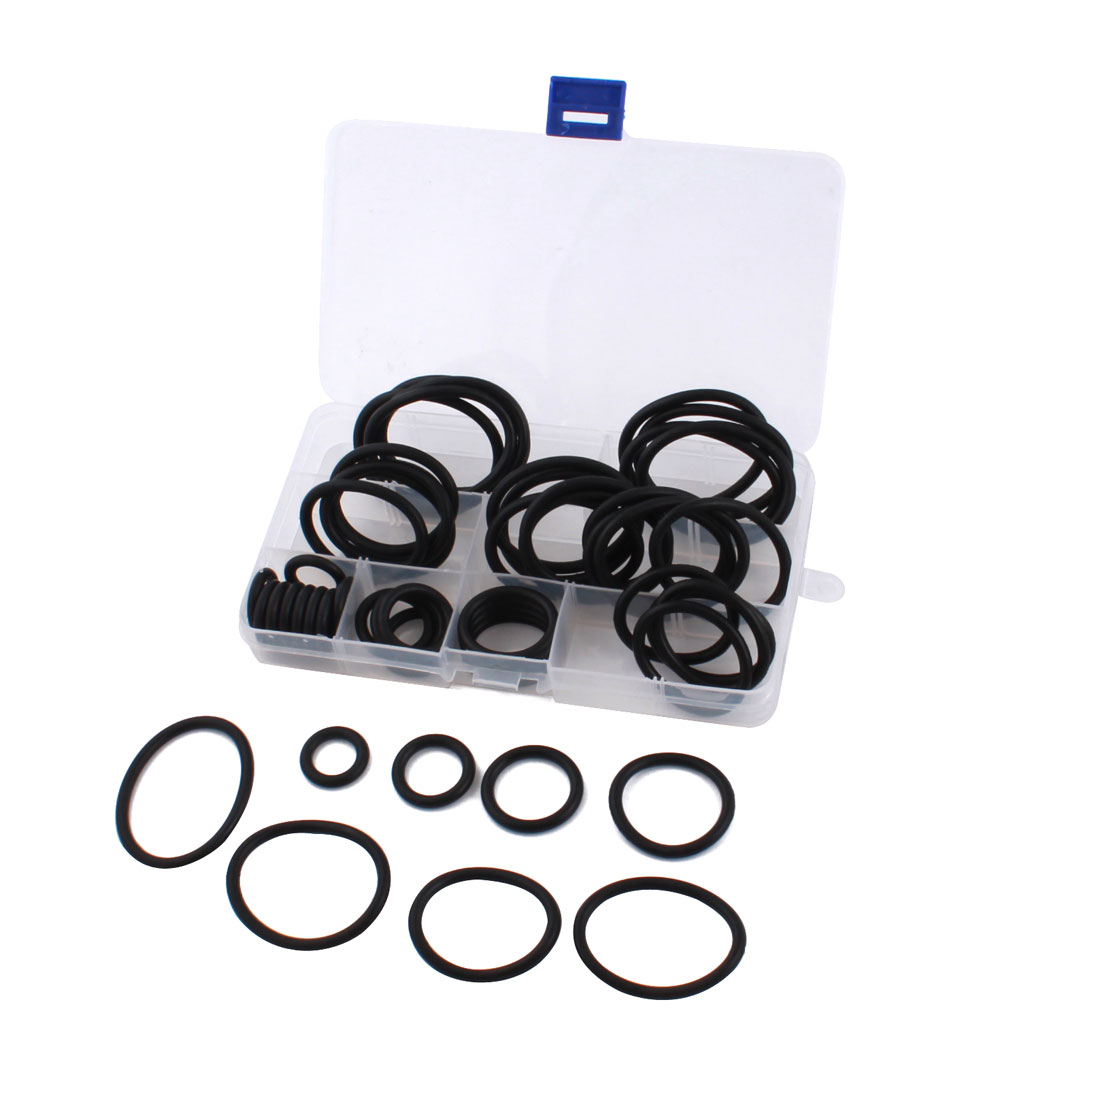 50Pcs 8 Size 22mm-49mm OD 4mm Thickness OD Oil Seal O Rings Washer Set